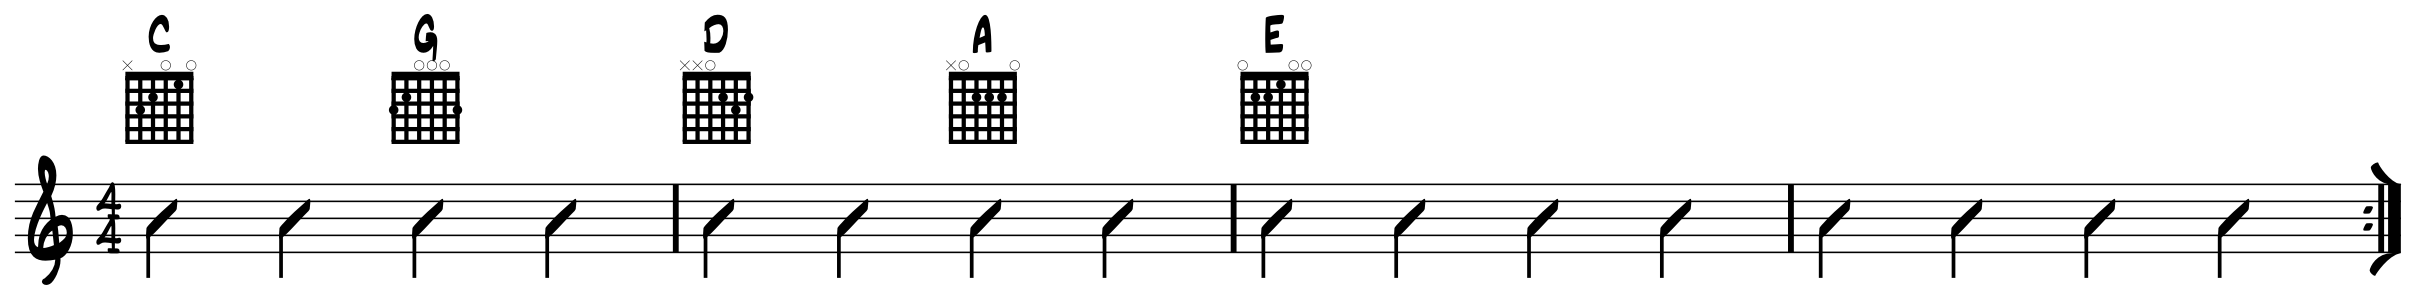 Hey Joe quarter notes tabs